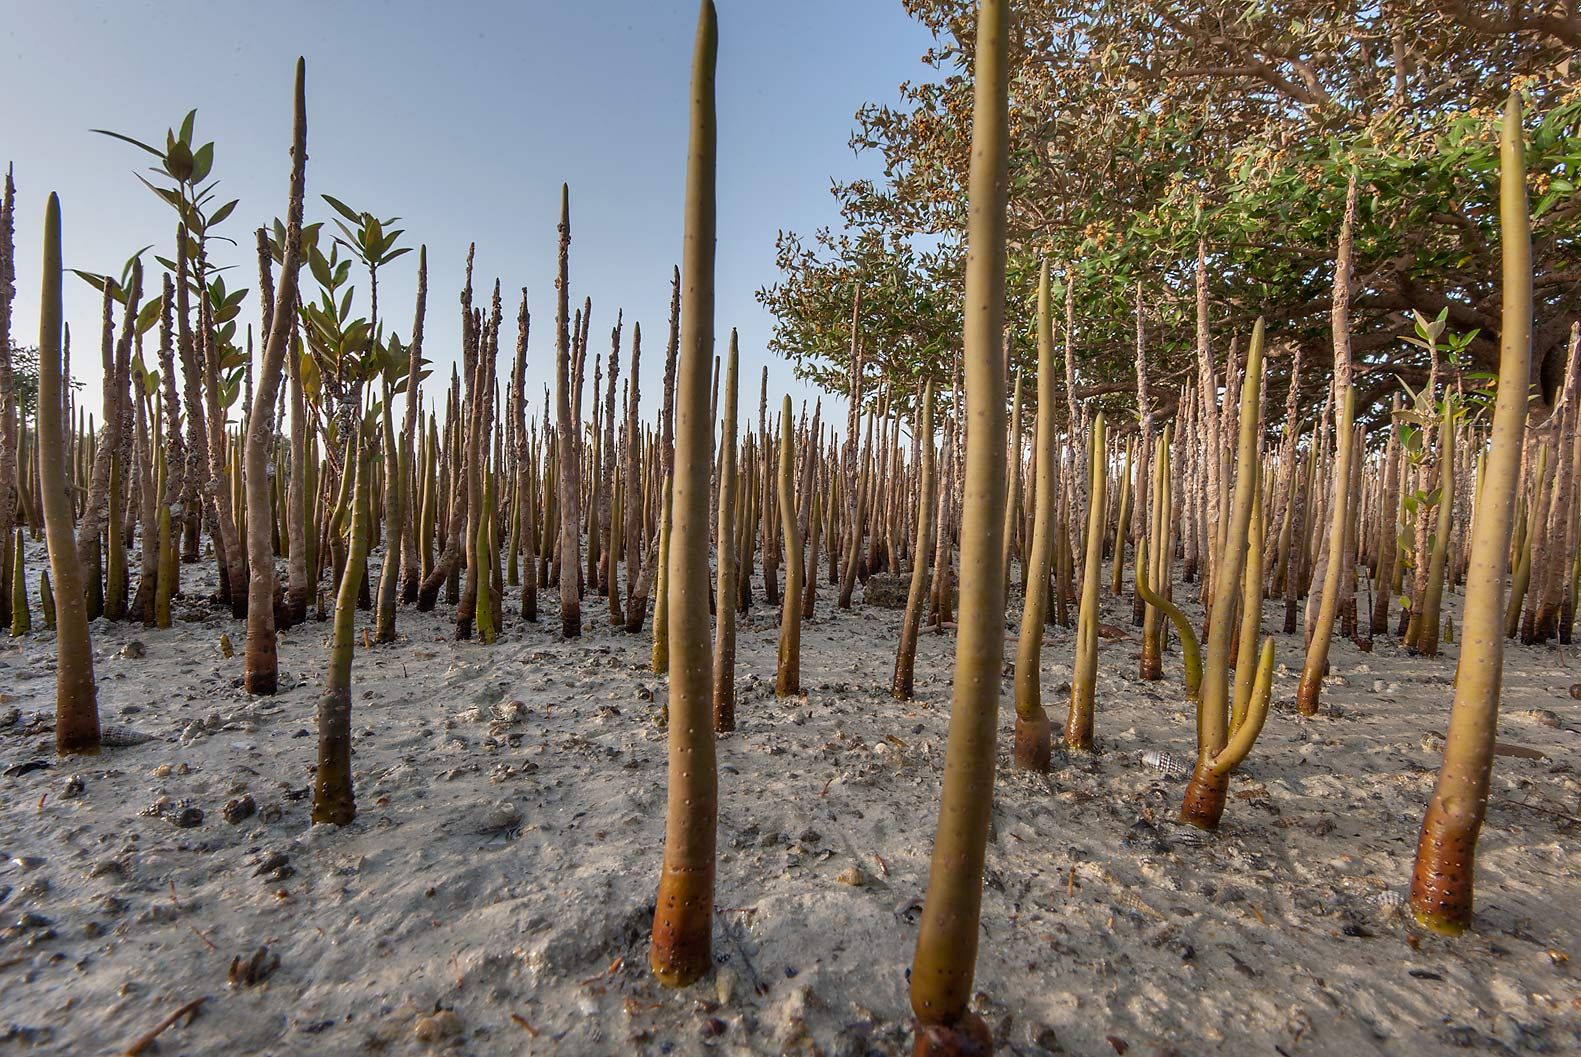 Breathing roots (pneumatophores) of mangroves...Jazirat Bin Ghanim). Al Khor, Qatar